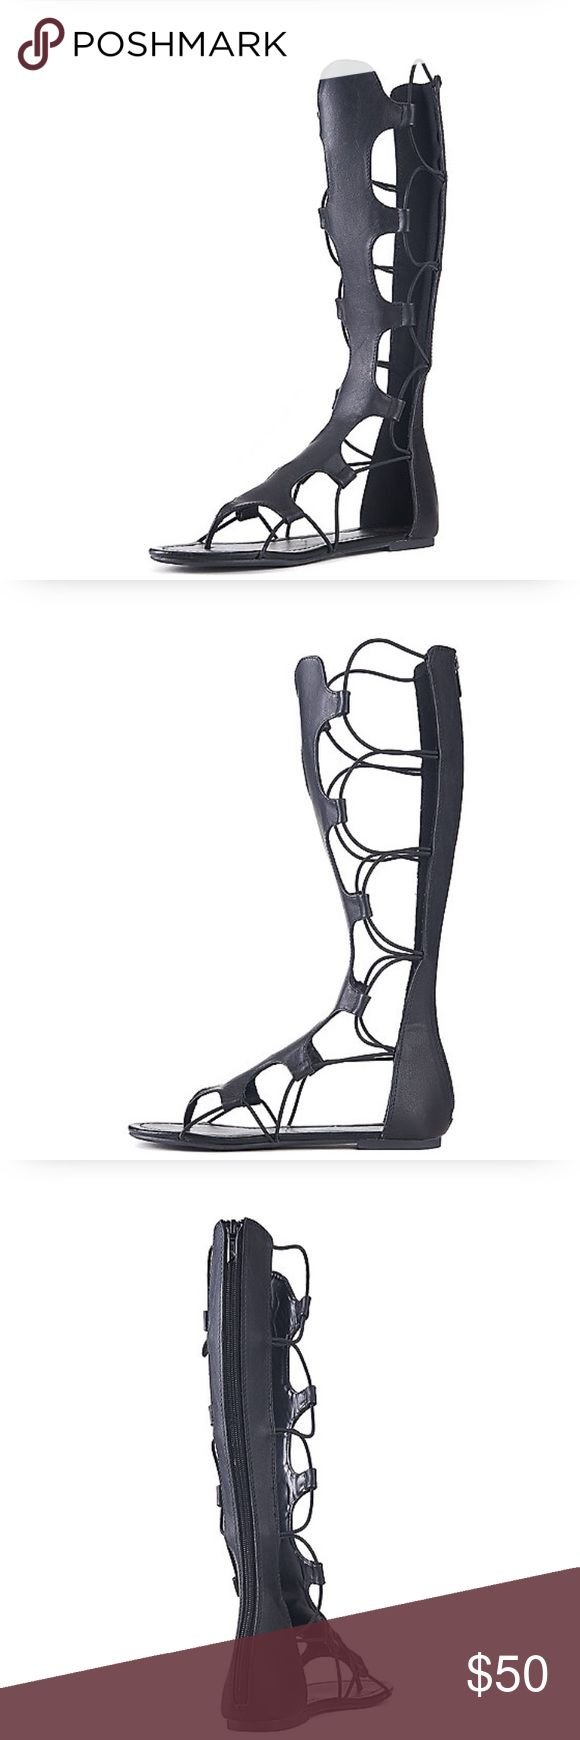 🎈COMING SOON🎈Woman's Gladiator Sandals NWT---RUNS HALF SIZE SMALLER Shoes Sandals